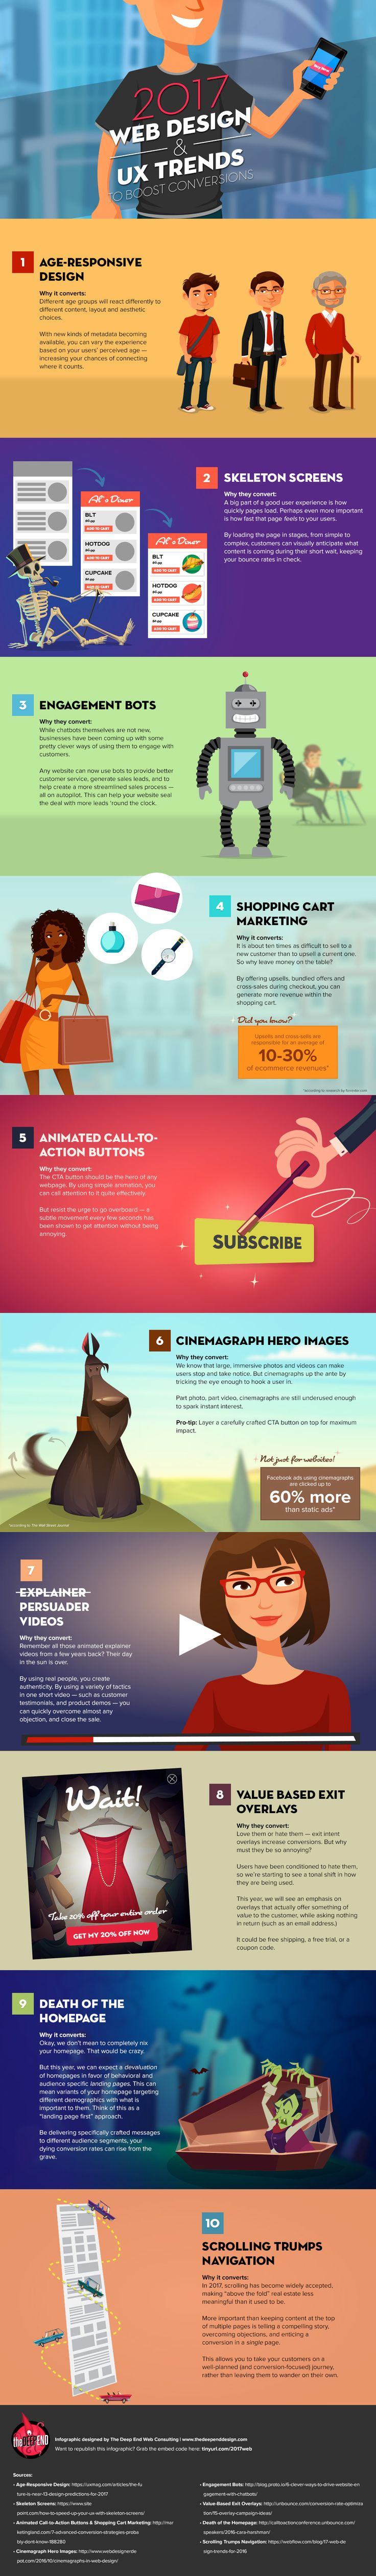 10 Web Design Trends That Will Rock 2017 #Infographic Http://www.